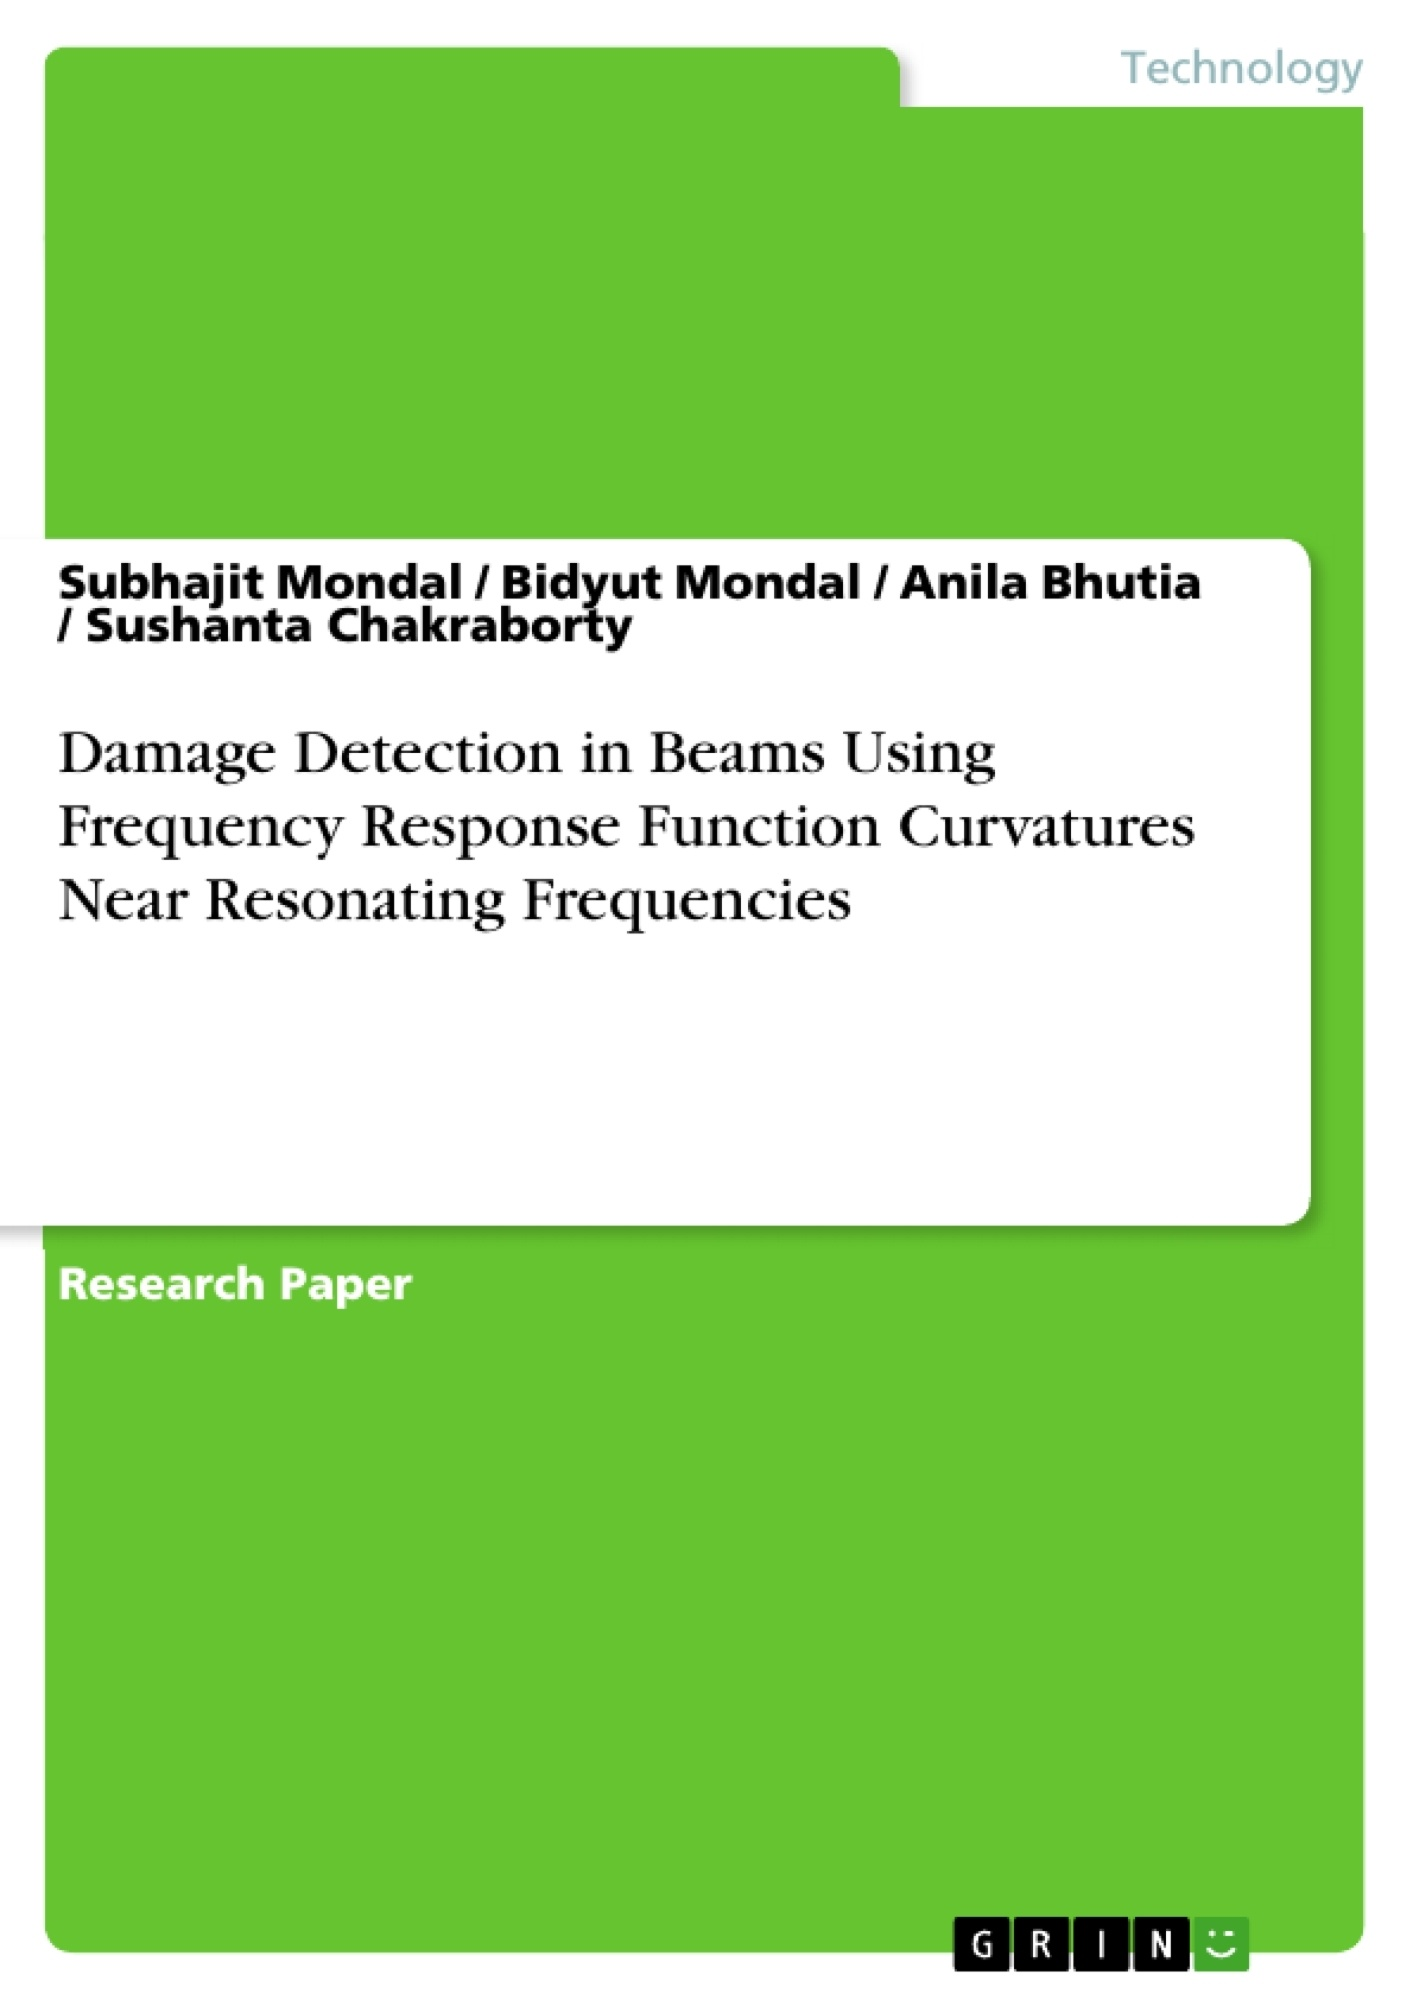 damage detection thesis Application of support vector machines for damage detection in structures by siddharth sharma a thesis submitted to the faculty of worcester polytechnic institute.